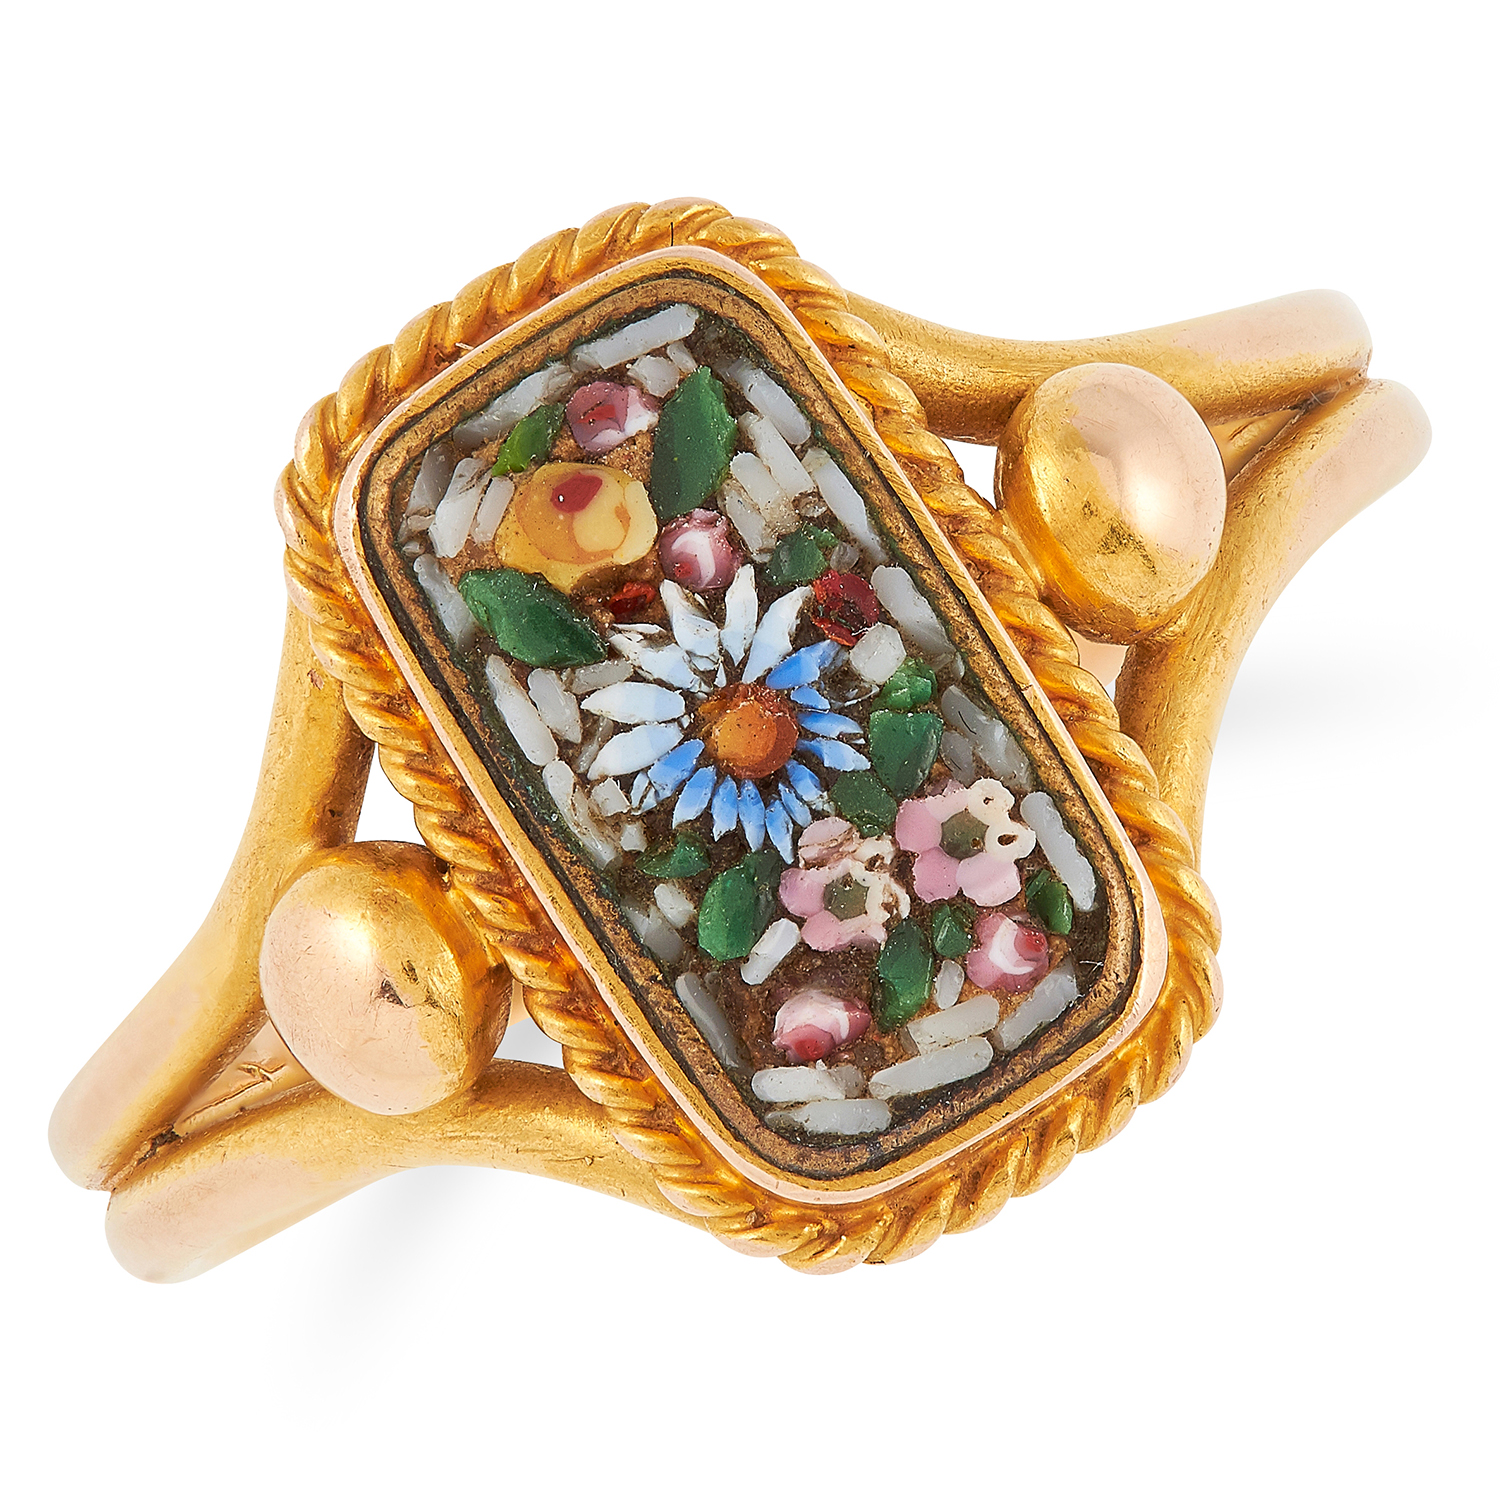 MICROMOSAIC RING in floral design, size N / 6.5, 4.3g.